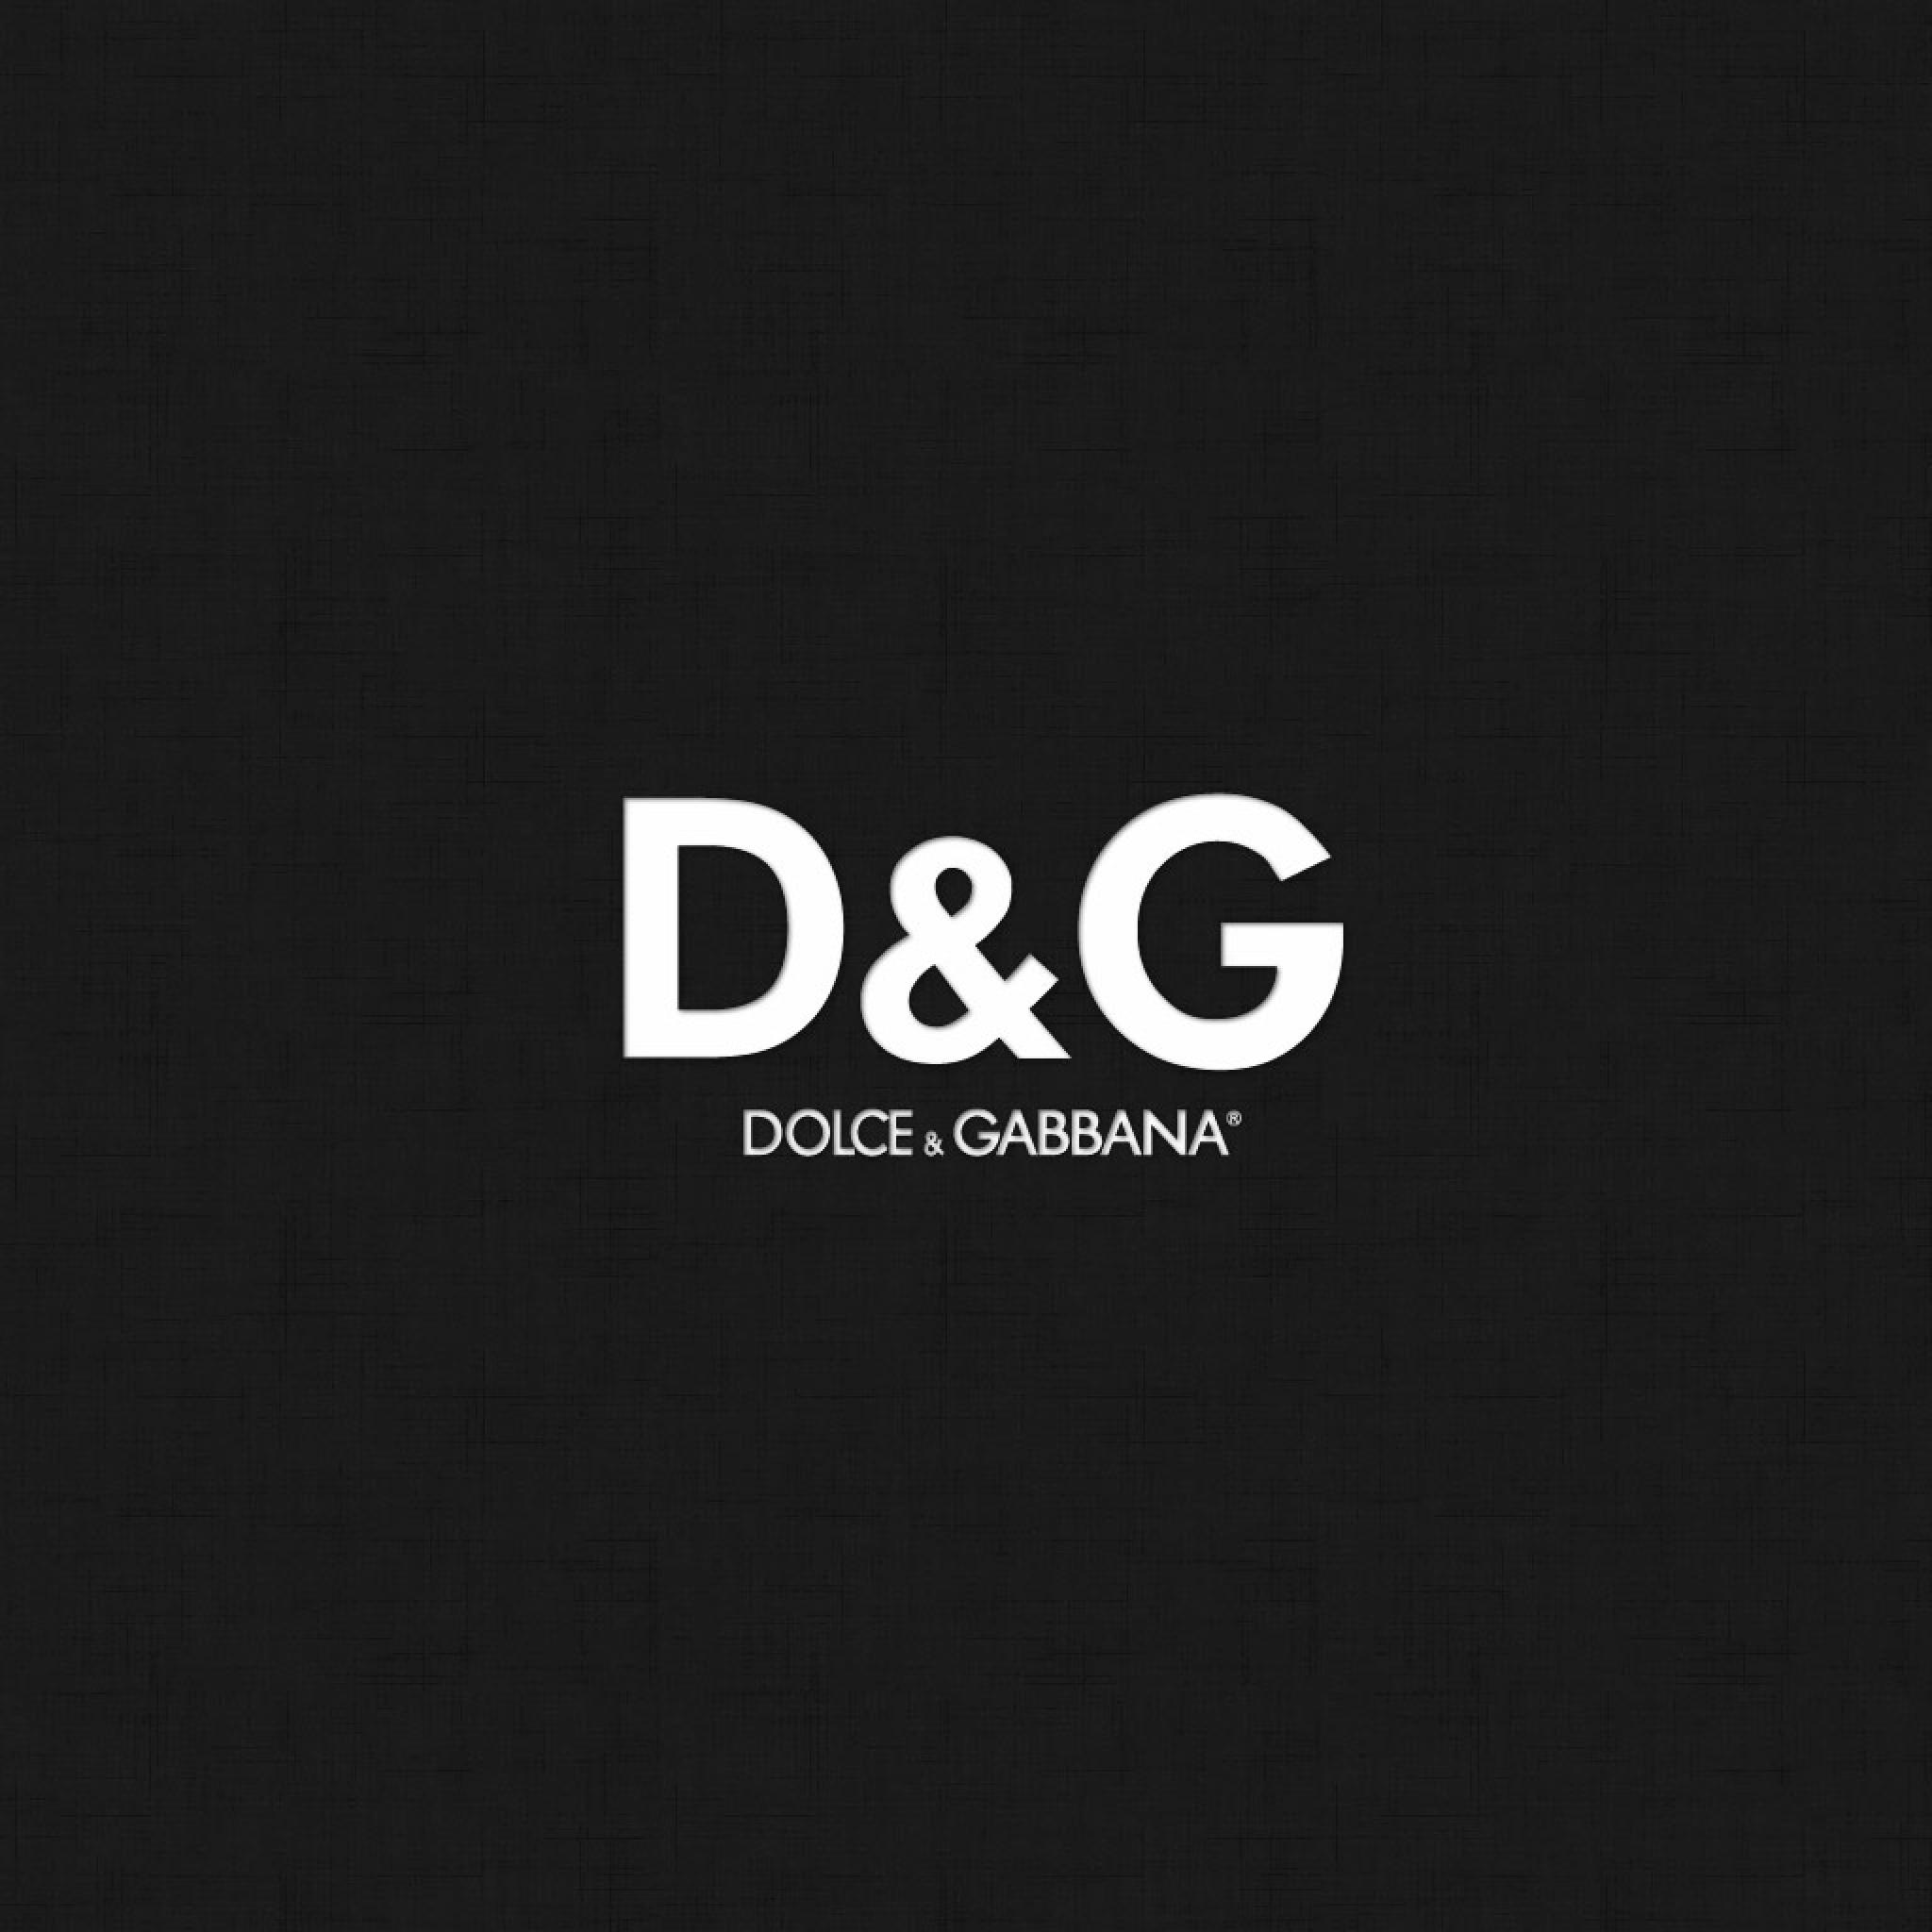 Cute Summer Wallpapers For Iphone Miscellaneous Dolce And Gabbana Logo Ipad Iphone Hd